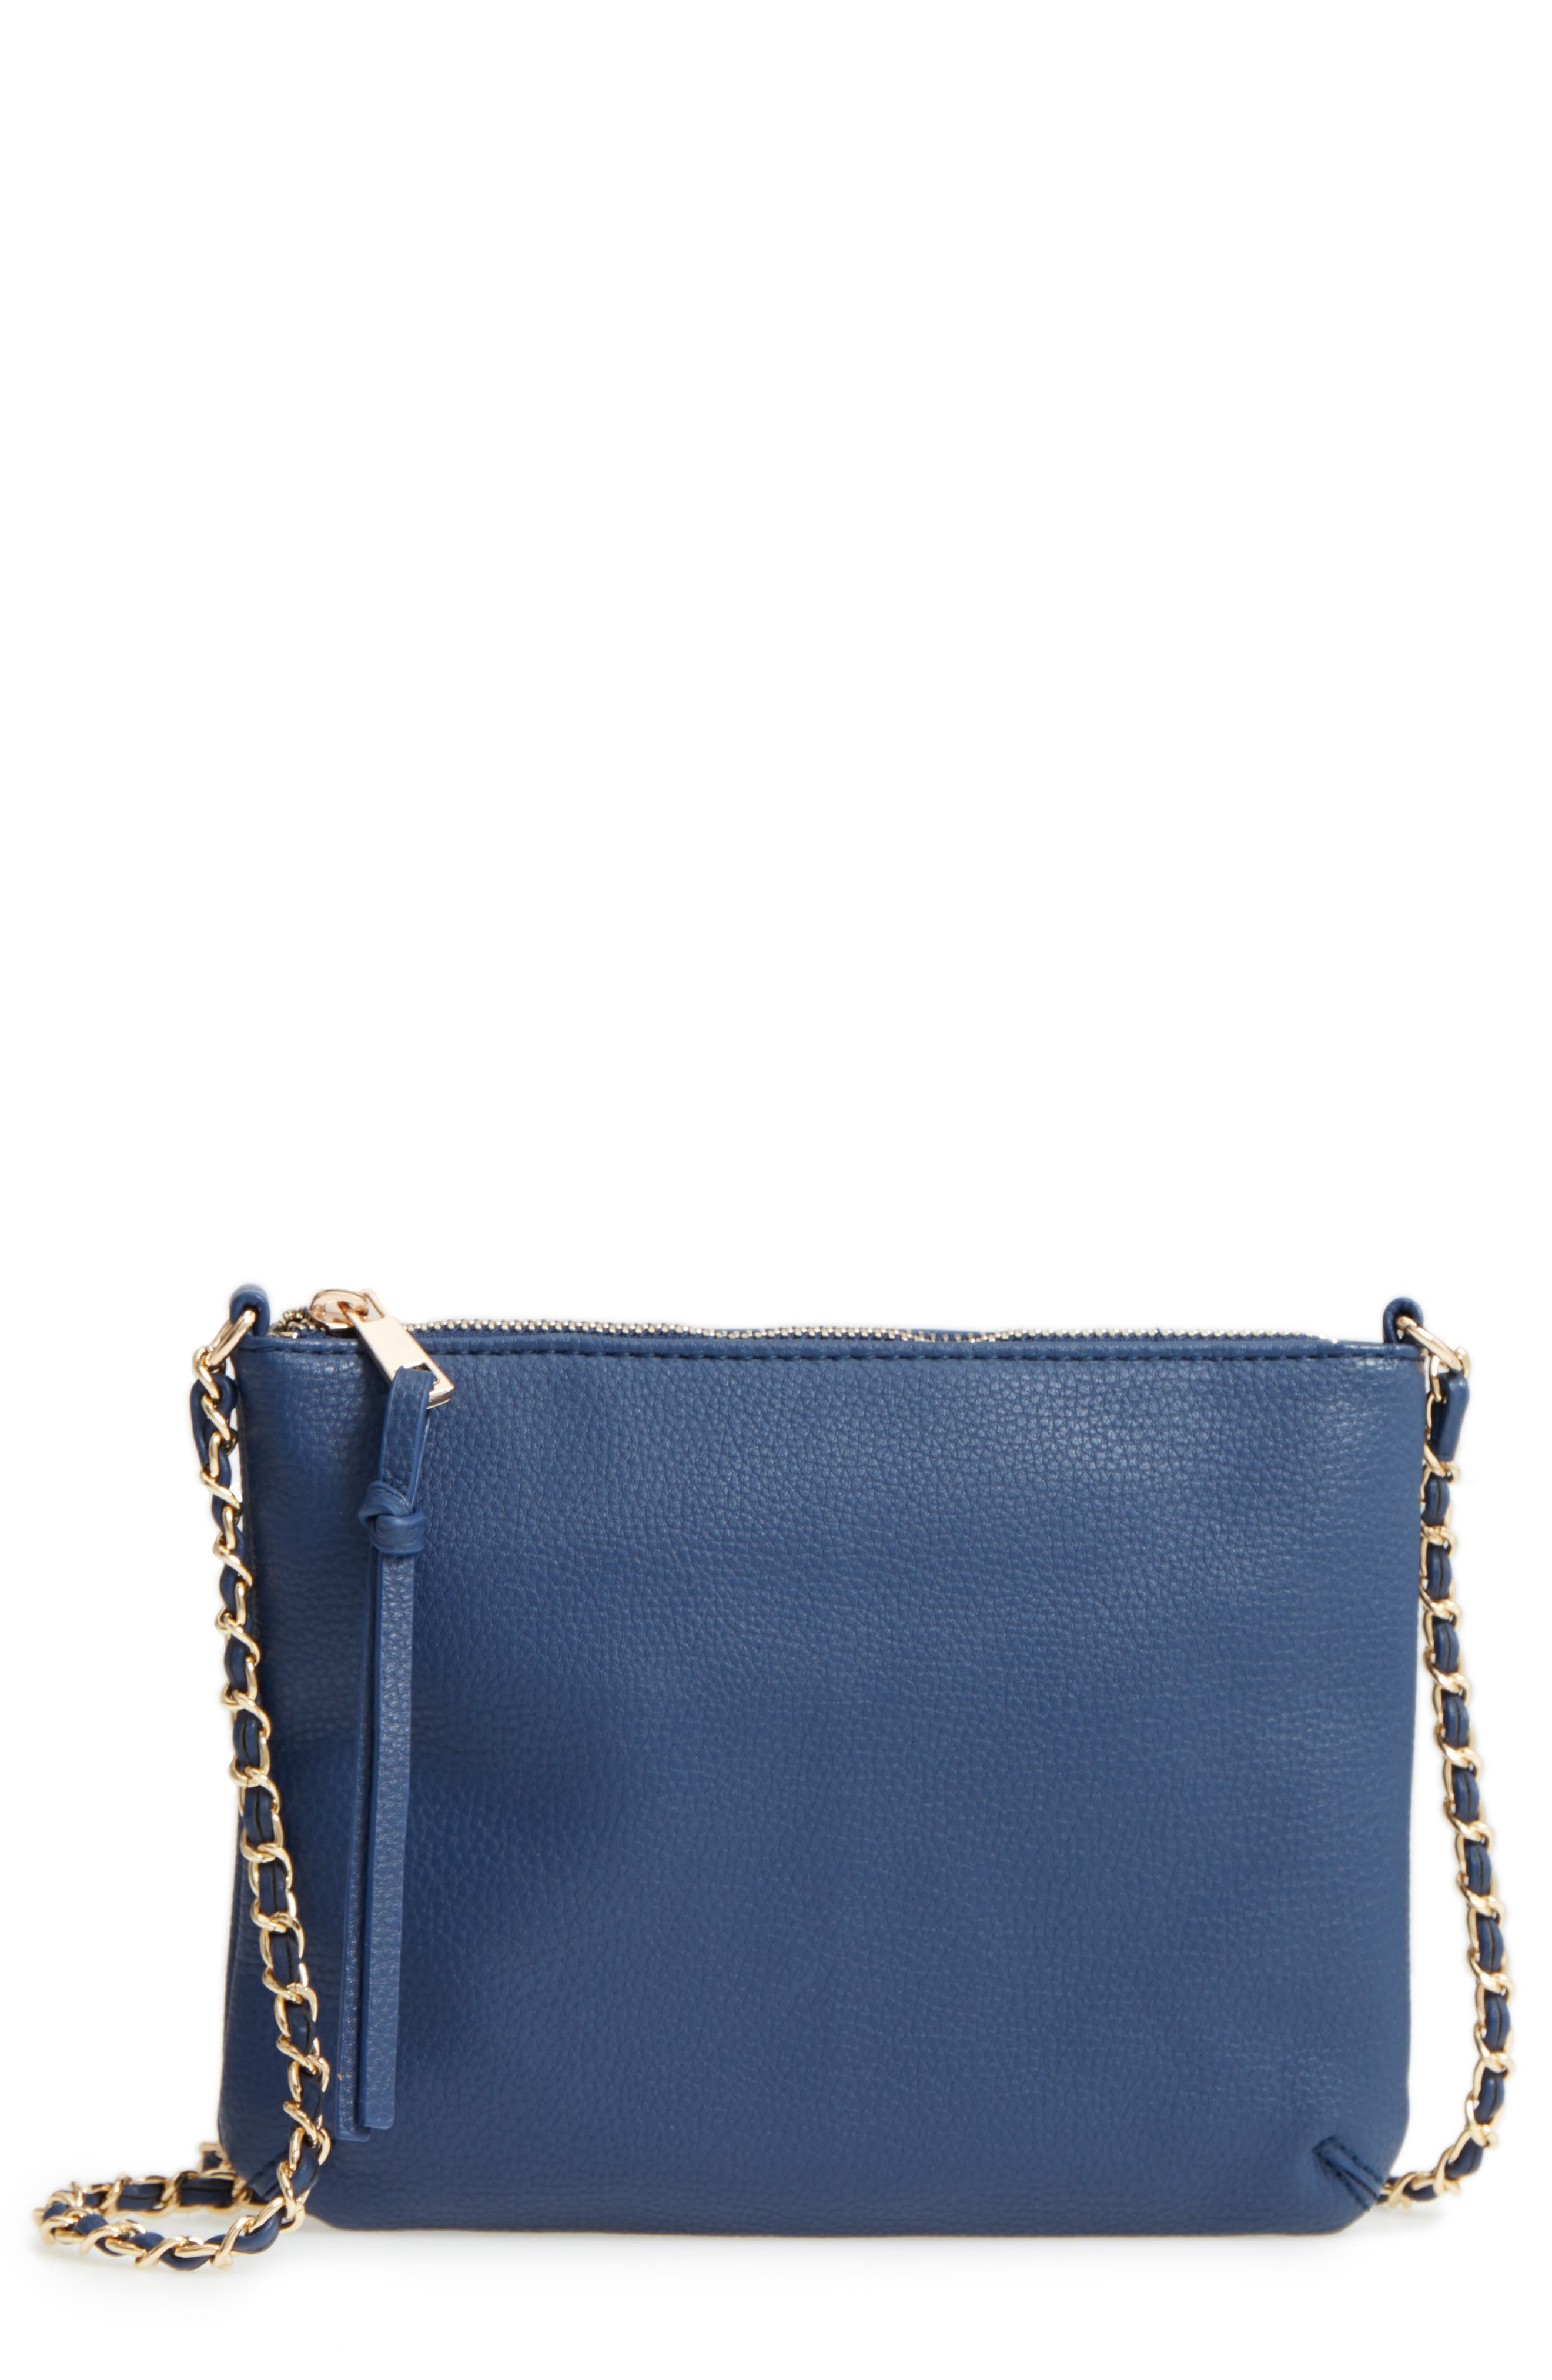 Faux Leather Crossbody Bag,                             Main thumbnail 1, color,                             410